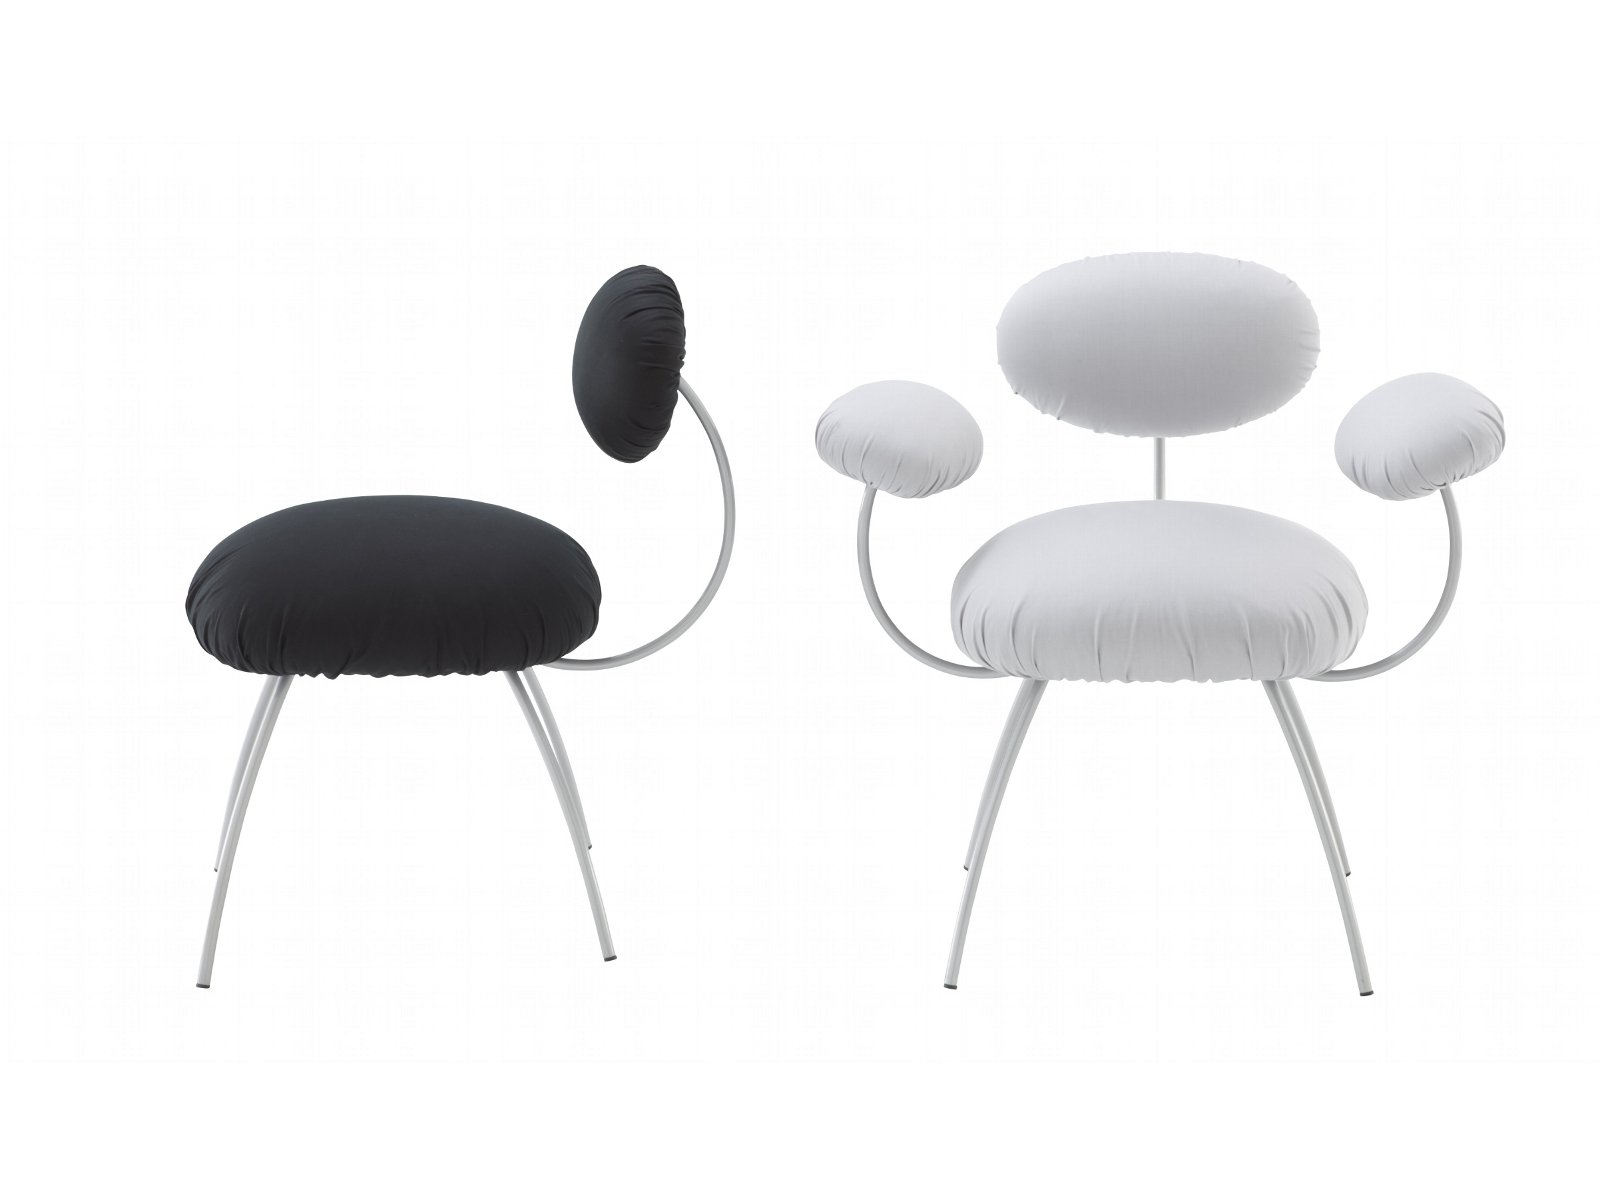 Upholstered chair with armrests saint james by roset for Atelier st jean chaise bercante